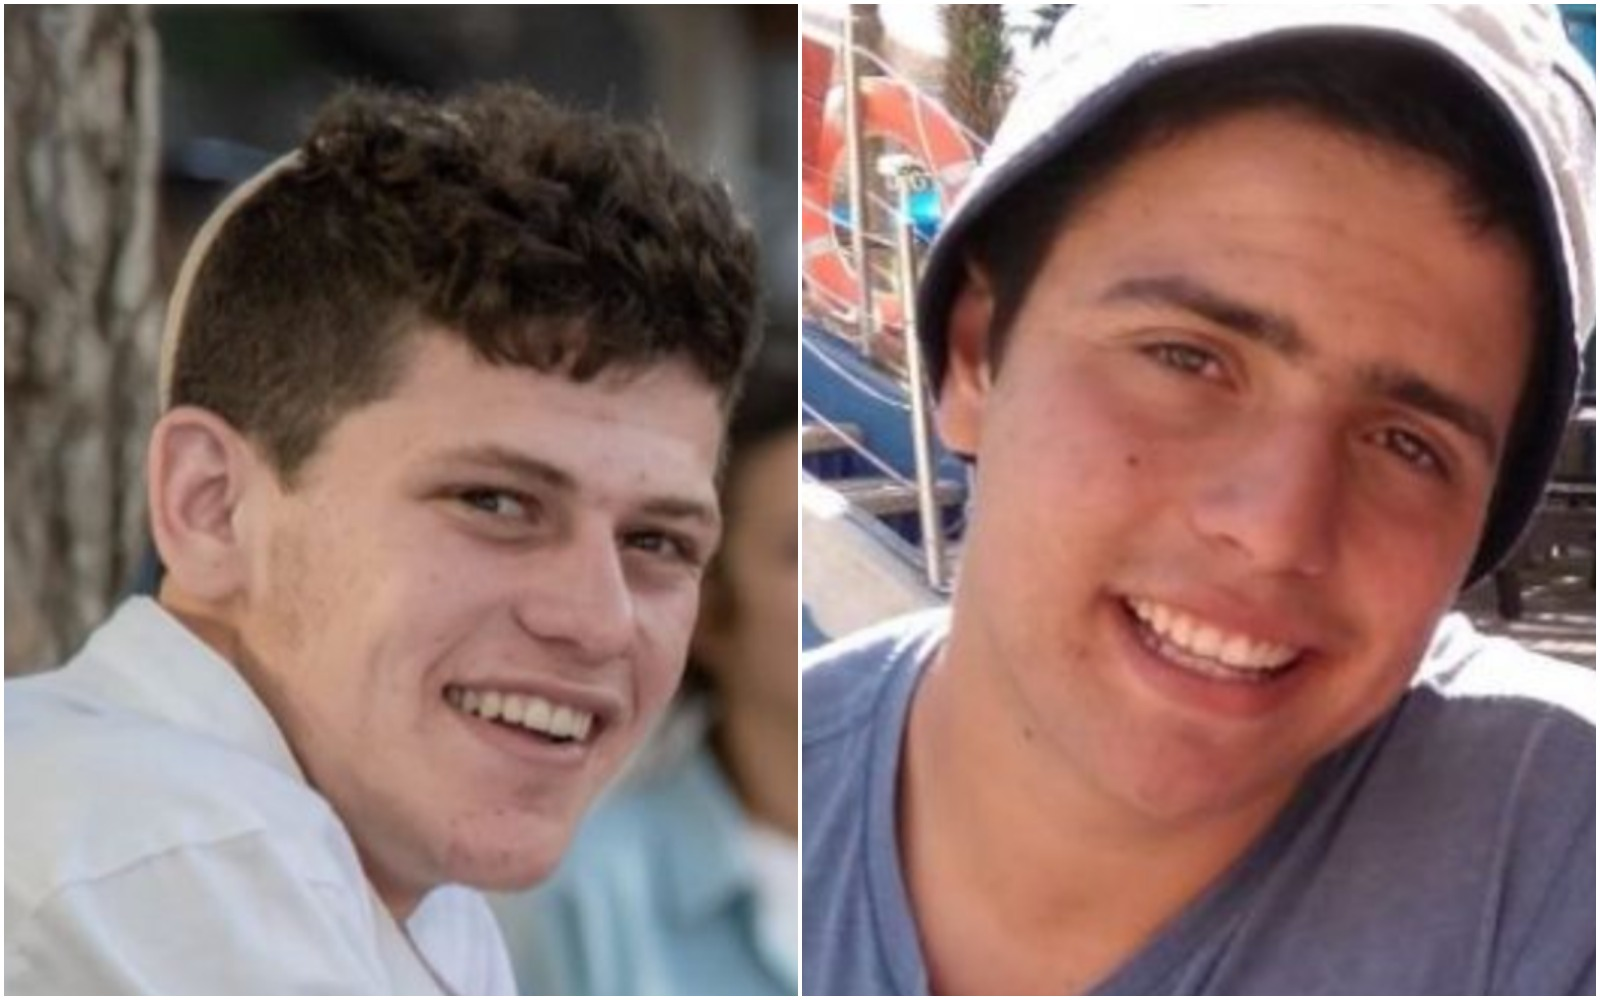 Two killed in West Bank car accident days before celebrating 18th